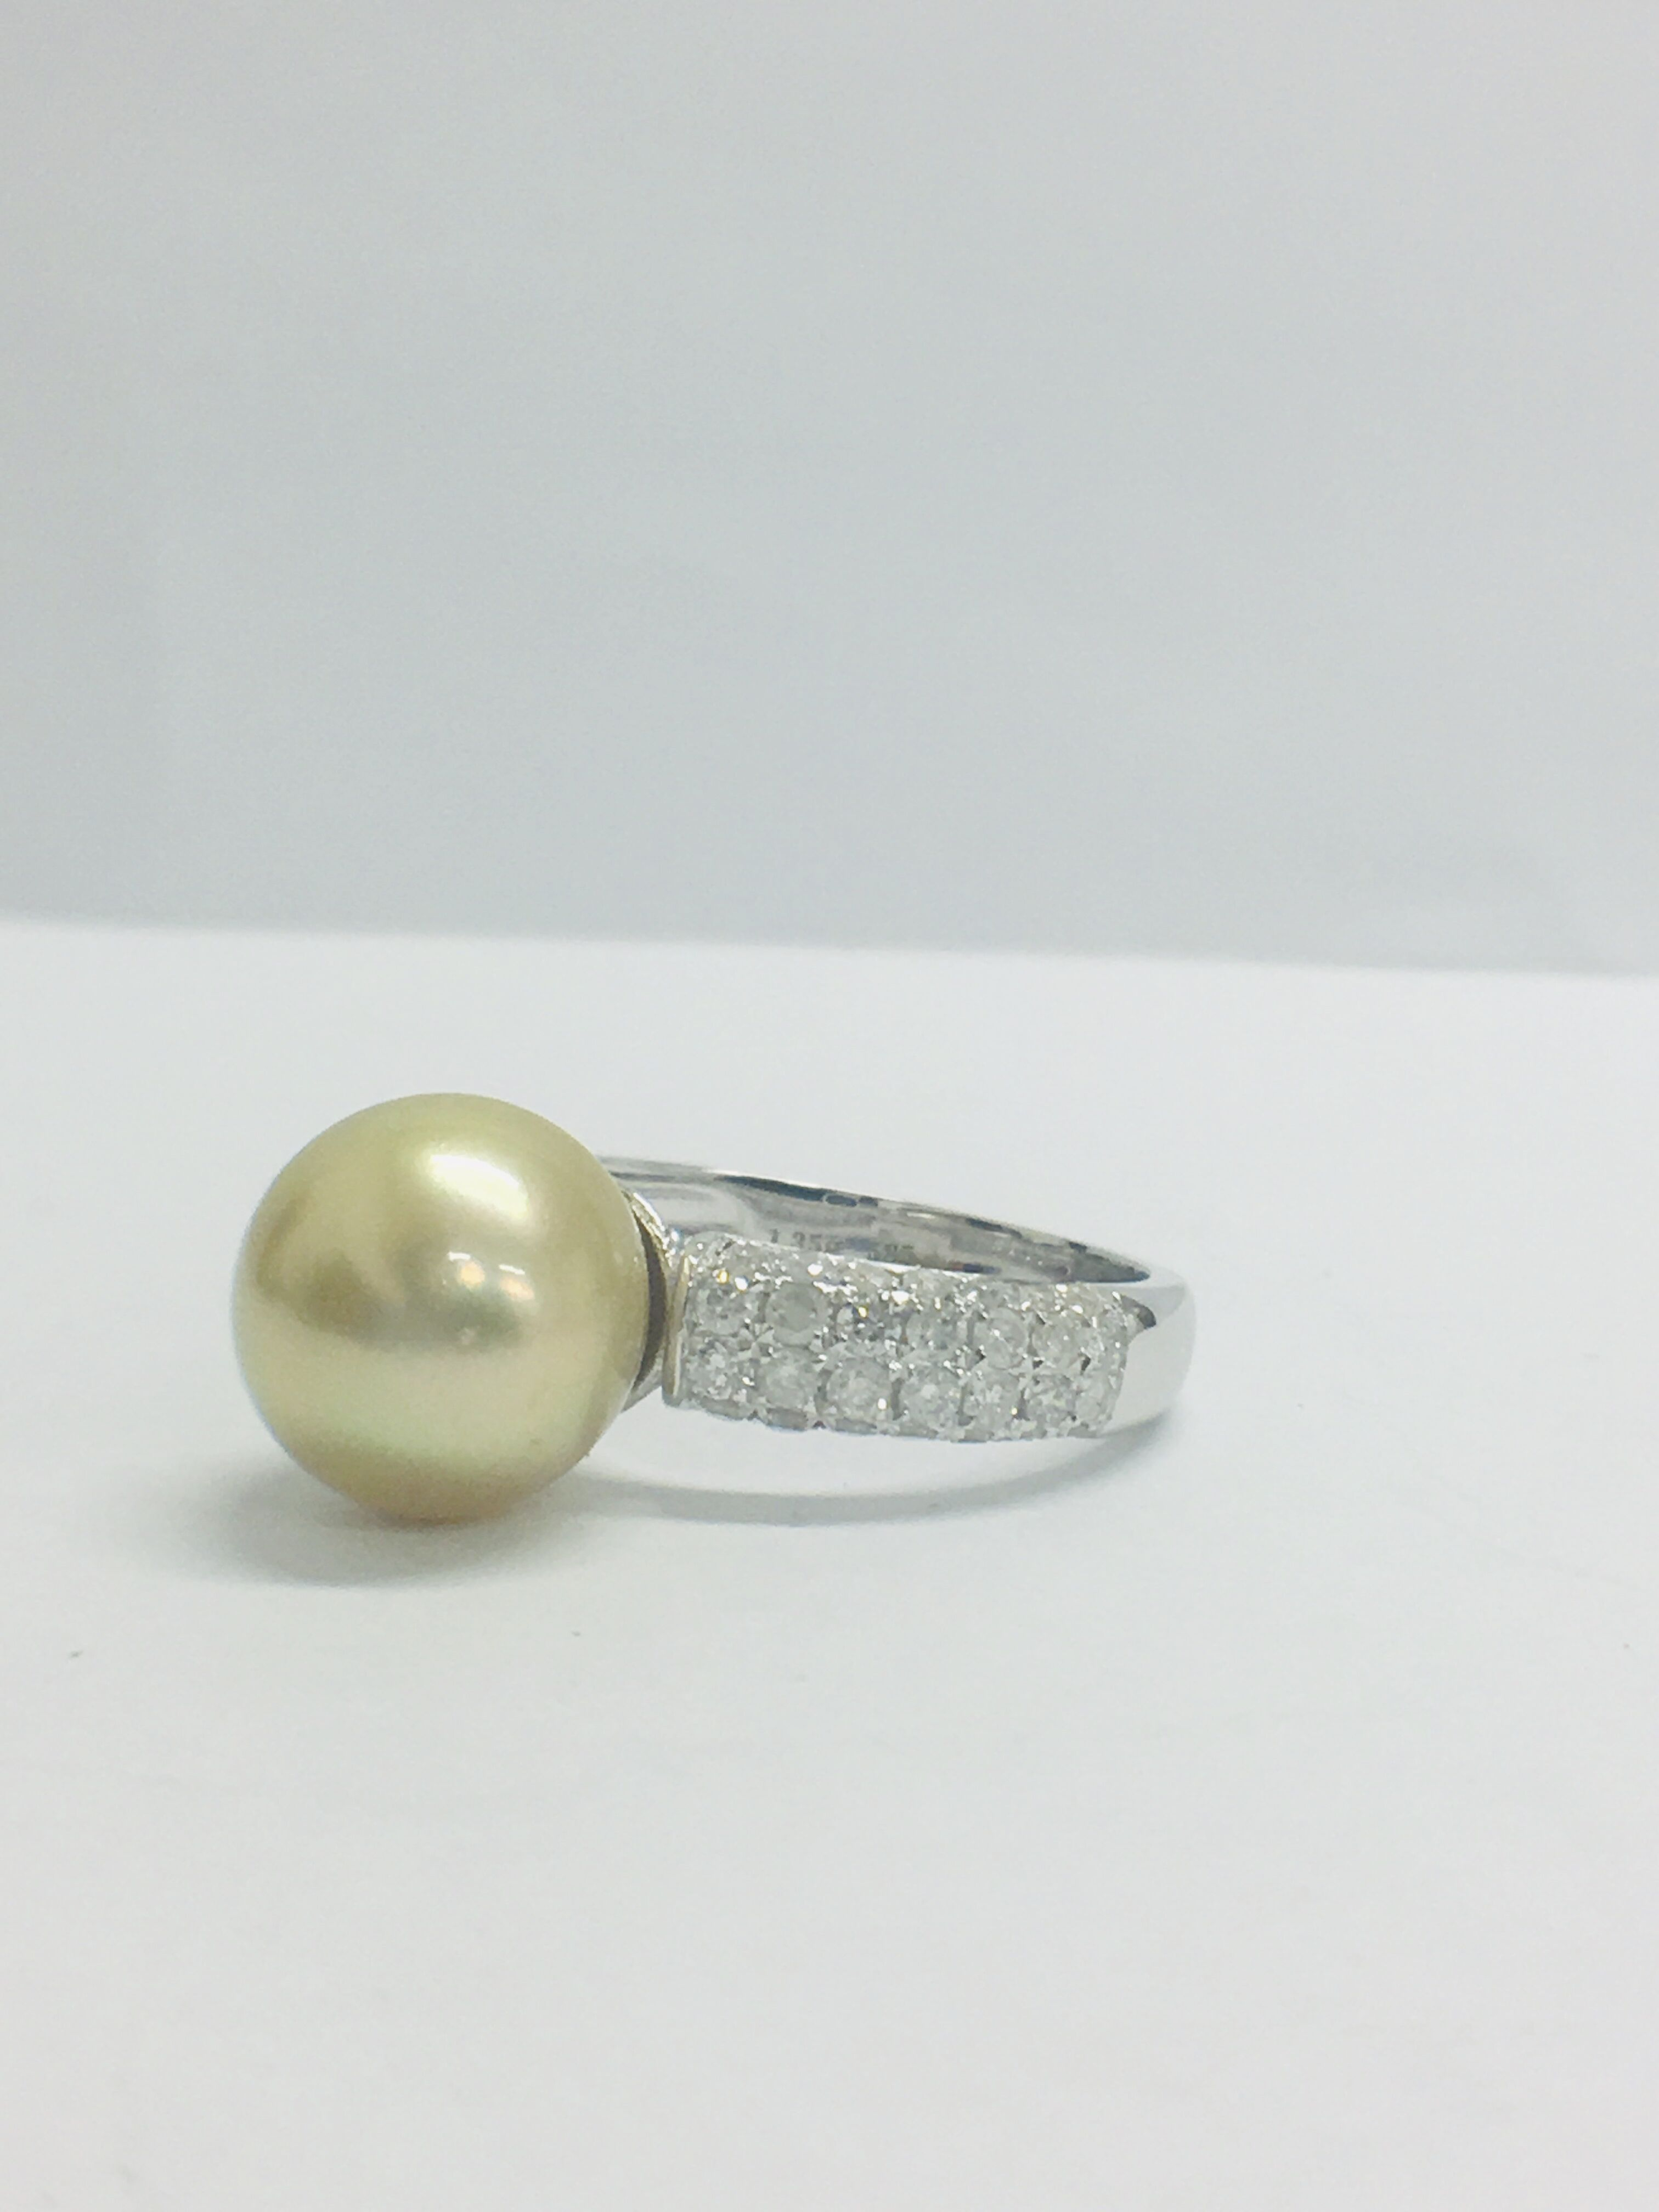 14ct white gold pearl & diamond ring. - Image 2 of 13